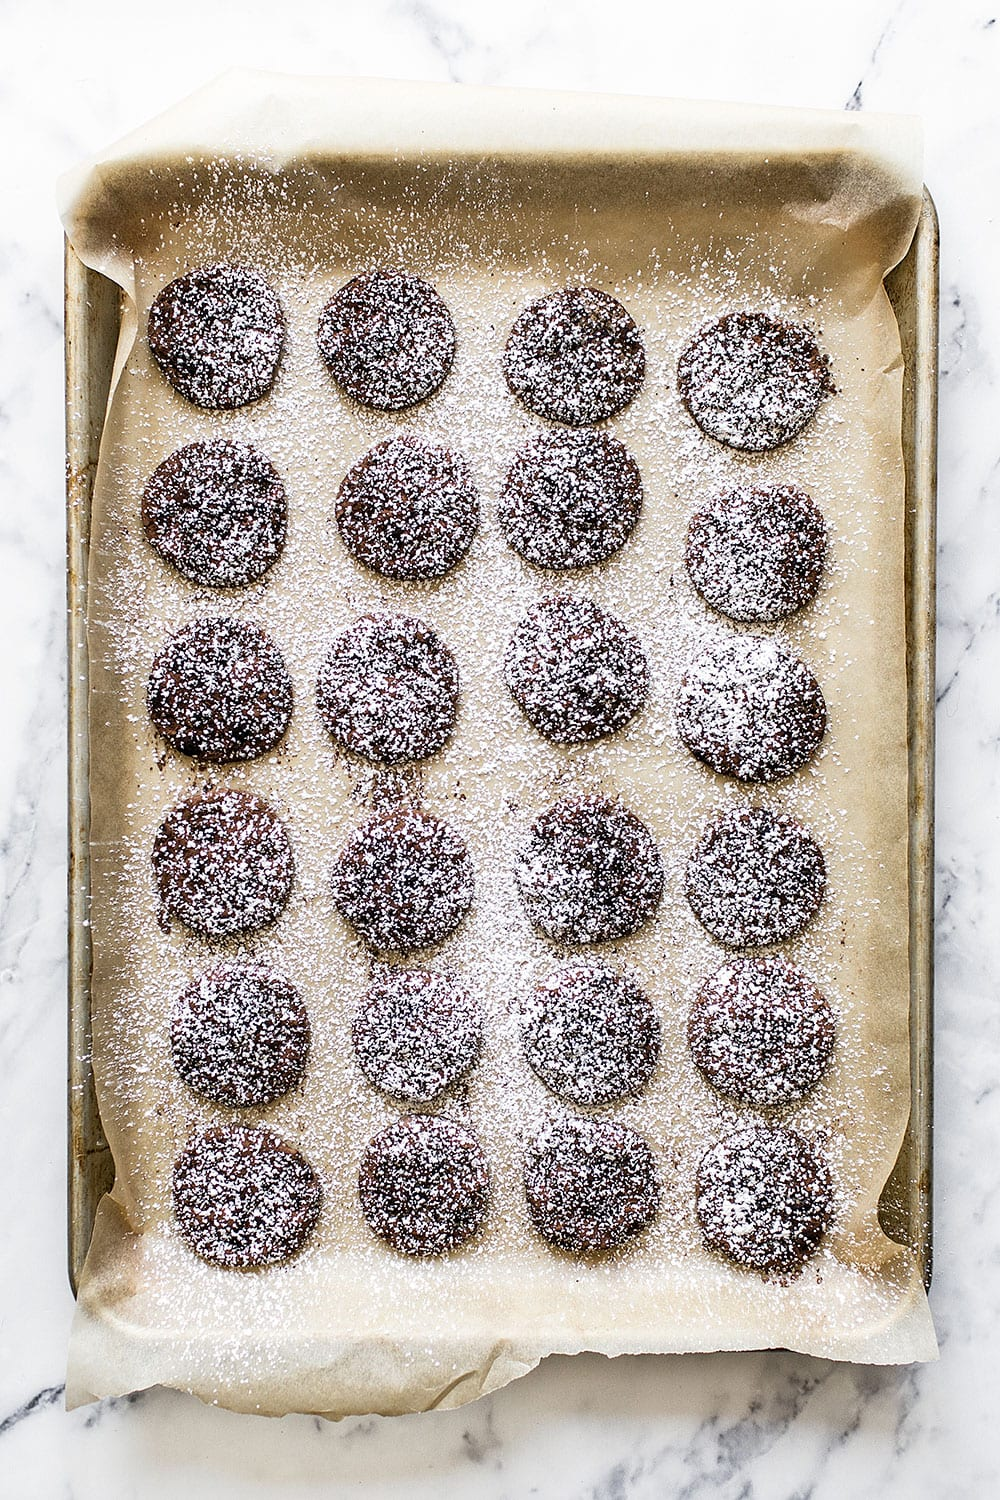 Mocha Cookies are bite-sized soft and chewy espresso chocolate chip cookies coated in cocoa powder and dusted with a snowfall of powdered sugar. A great Christmas cookie recipe!